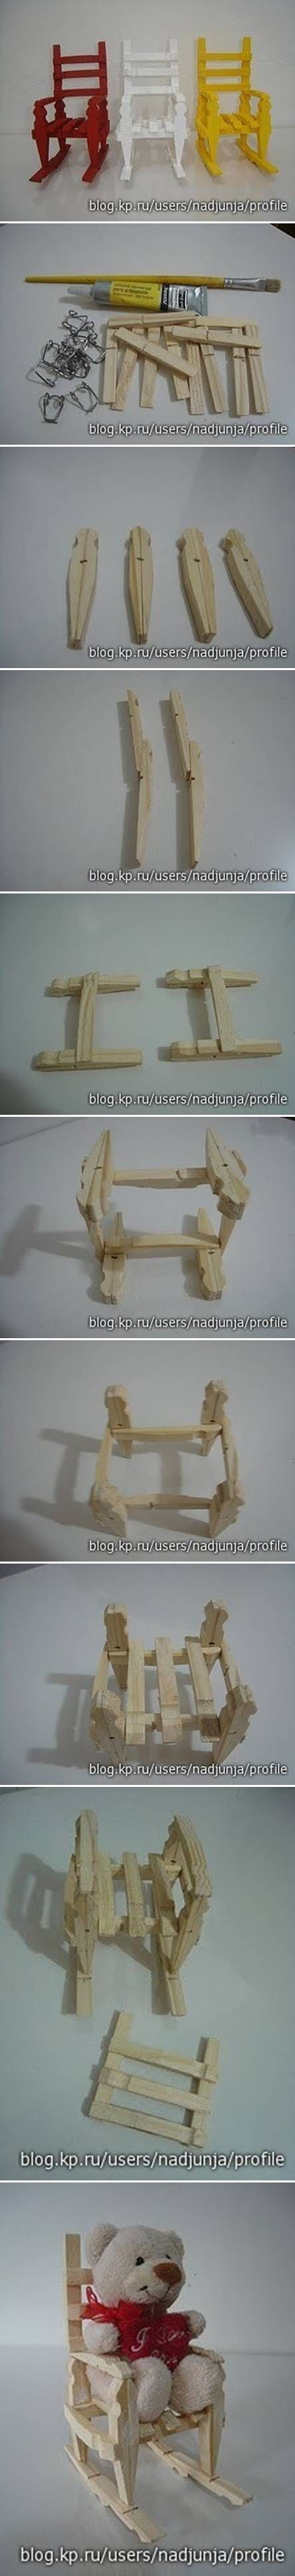 "<input+type=""hidden""+value=""""+data-frizzlyPostContainer=""""+data-frizzlyPostUrl=""http://www.usefuldiy.com/diy-clothespin-rocking-chair/""+data-frizzlyPostTitle=""DIY+Clothespin+Rocking+Chair""+data-frizzlyHoverContainer=""""><p>>>>+Craft+Tutorials+More+Free+Instructions+Free+Tutorials+More+Craft+Tutorials</p>"